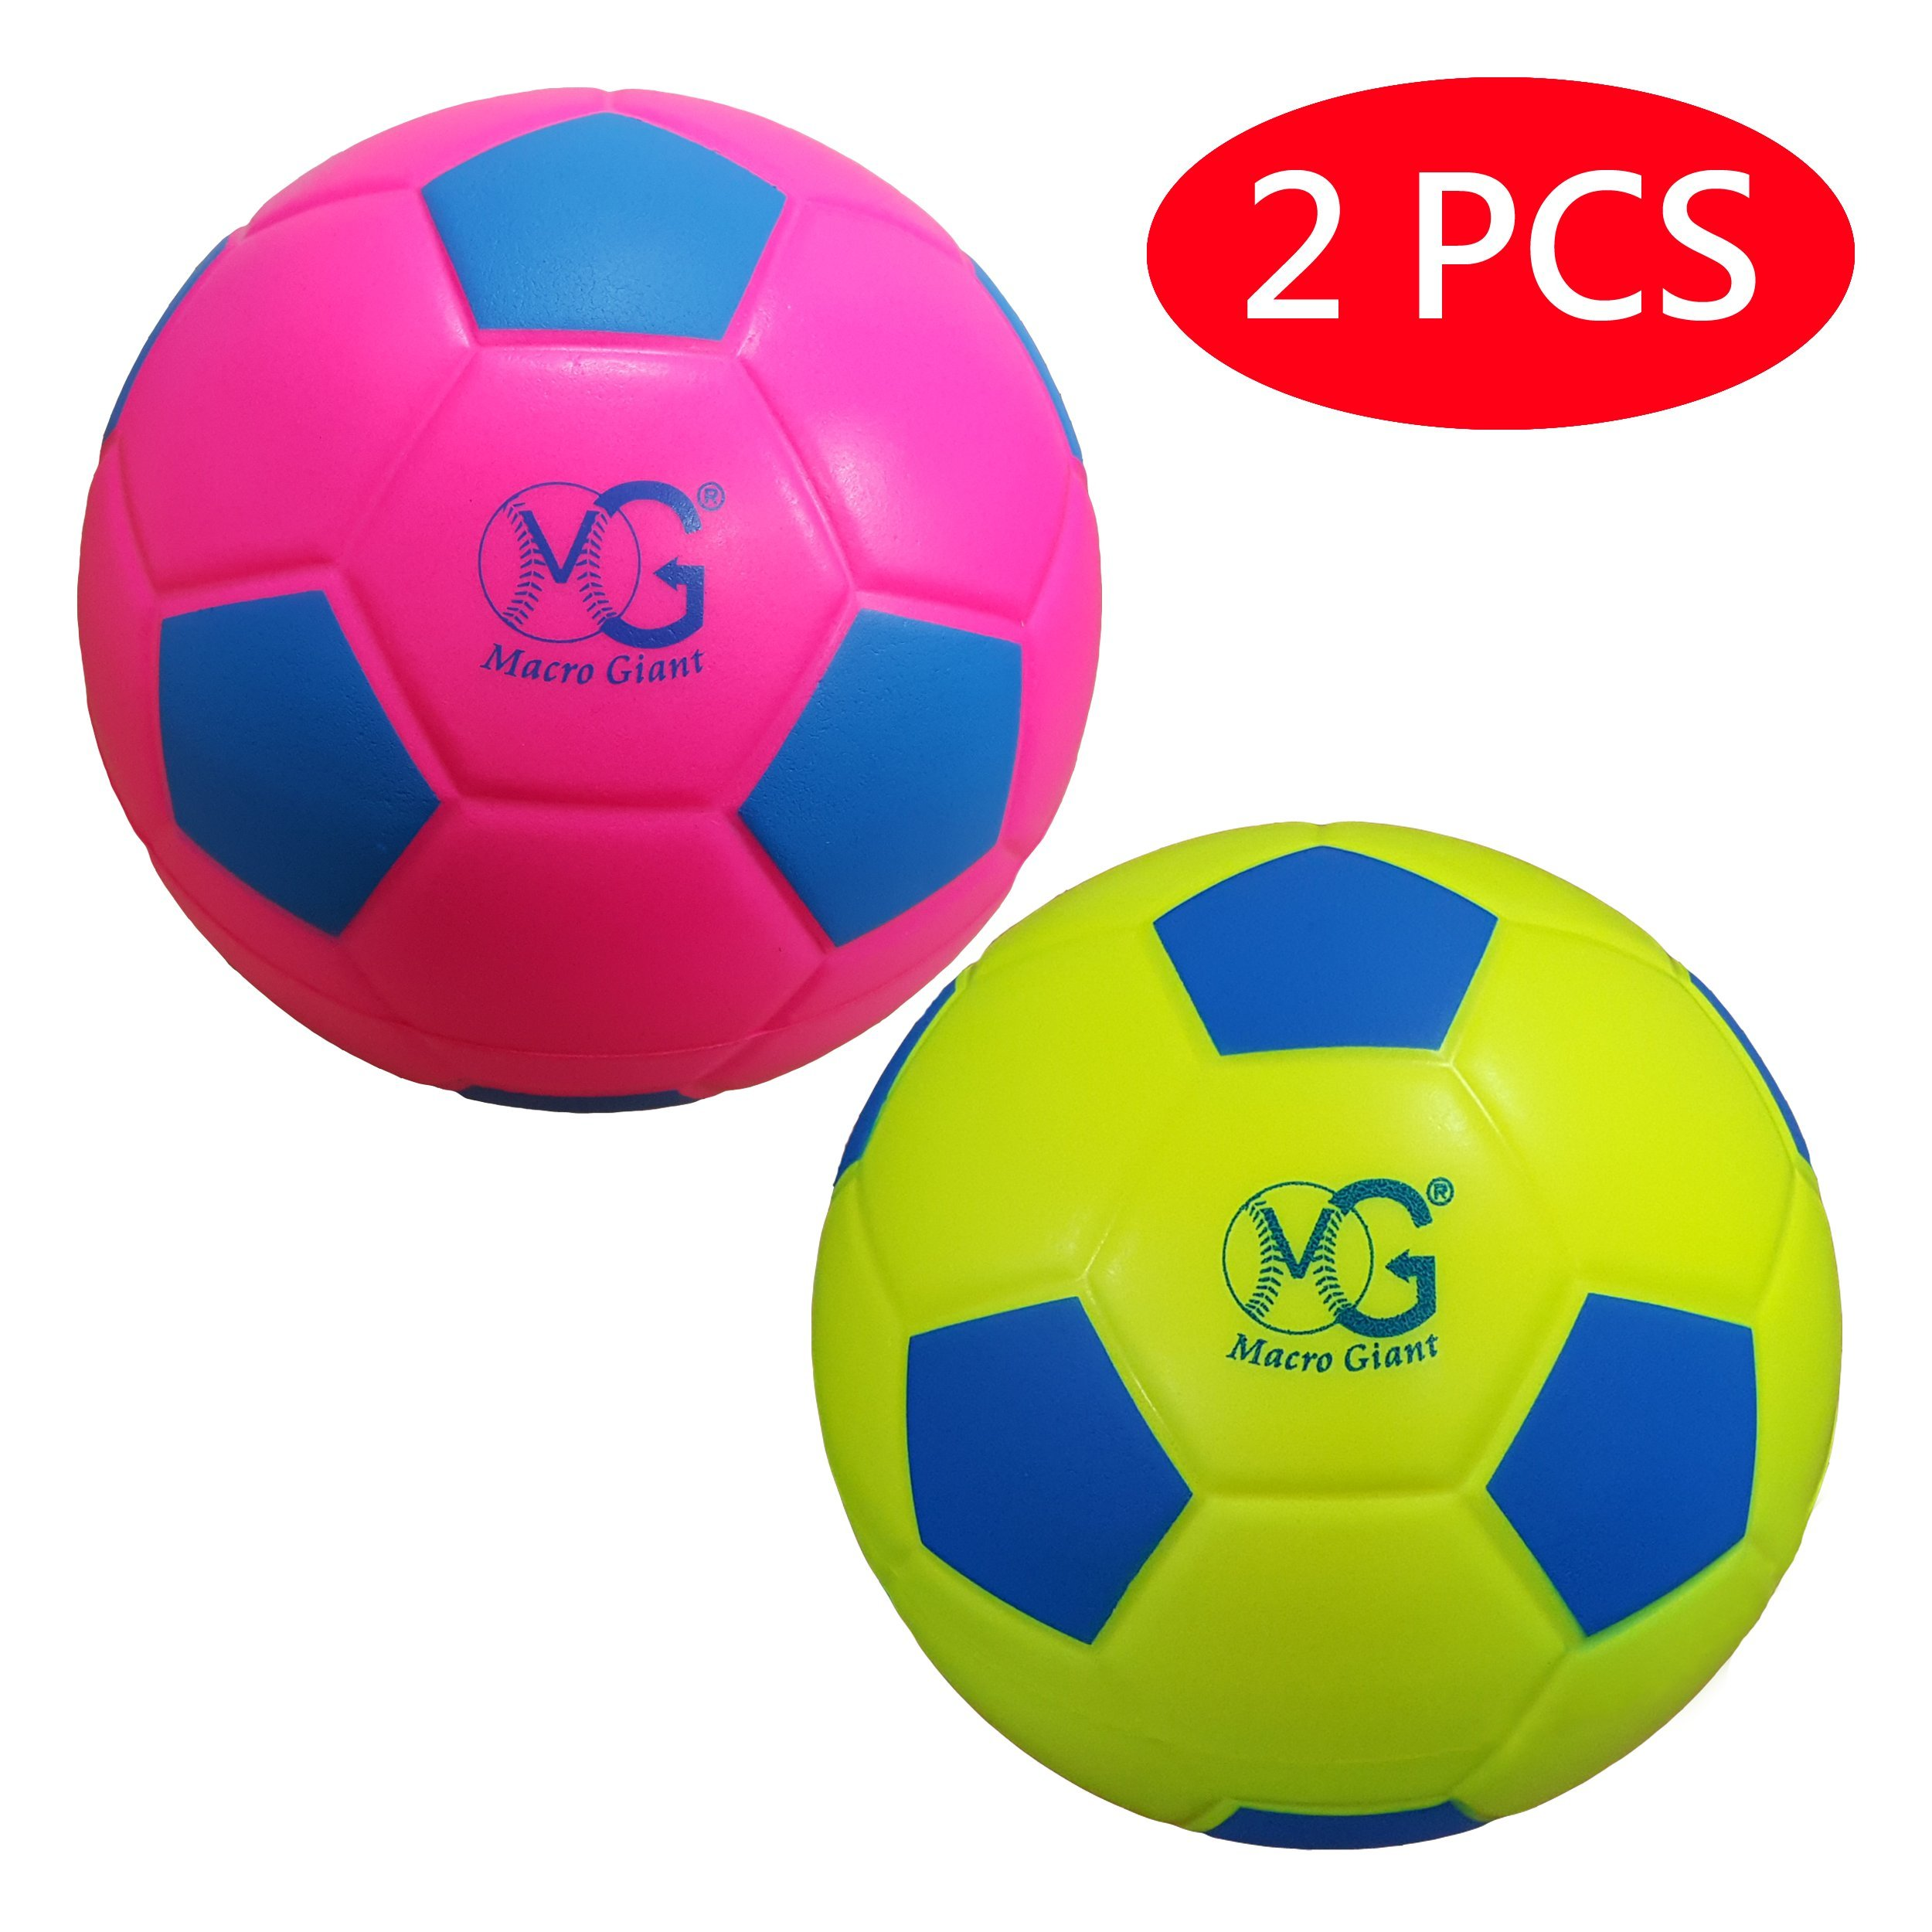 Macro Giant 7.5 Inch (Diameter) Safe Soft Foam Training Practice Soccer Ball, Set of 2, Neon Red & Neon Yellow, Playground Ball, Kid Sports Toys, Kickball, School Playground